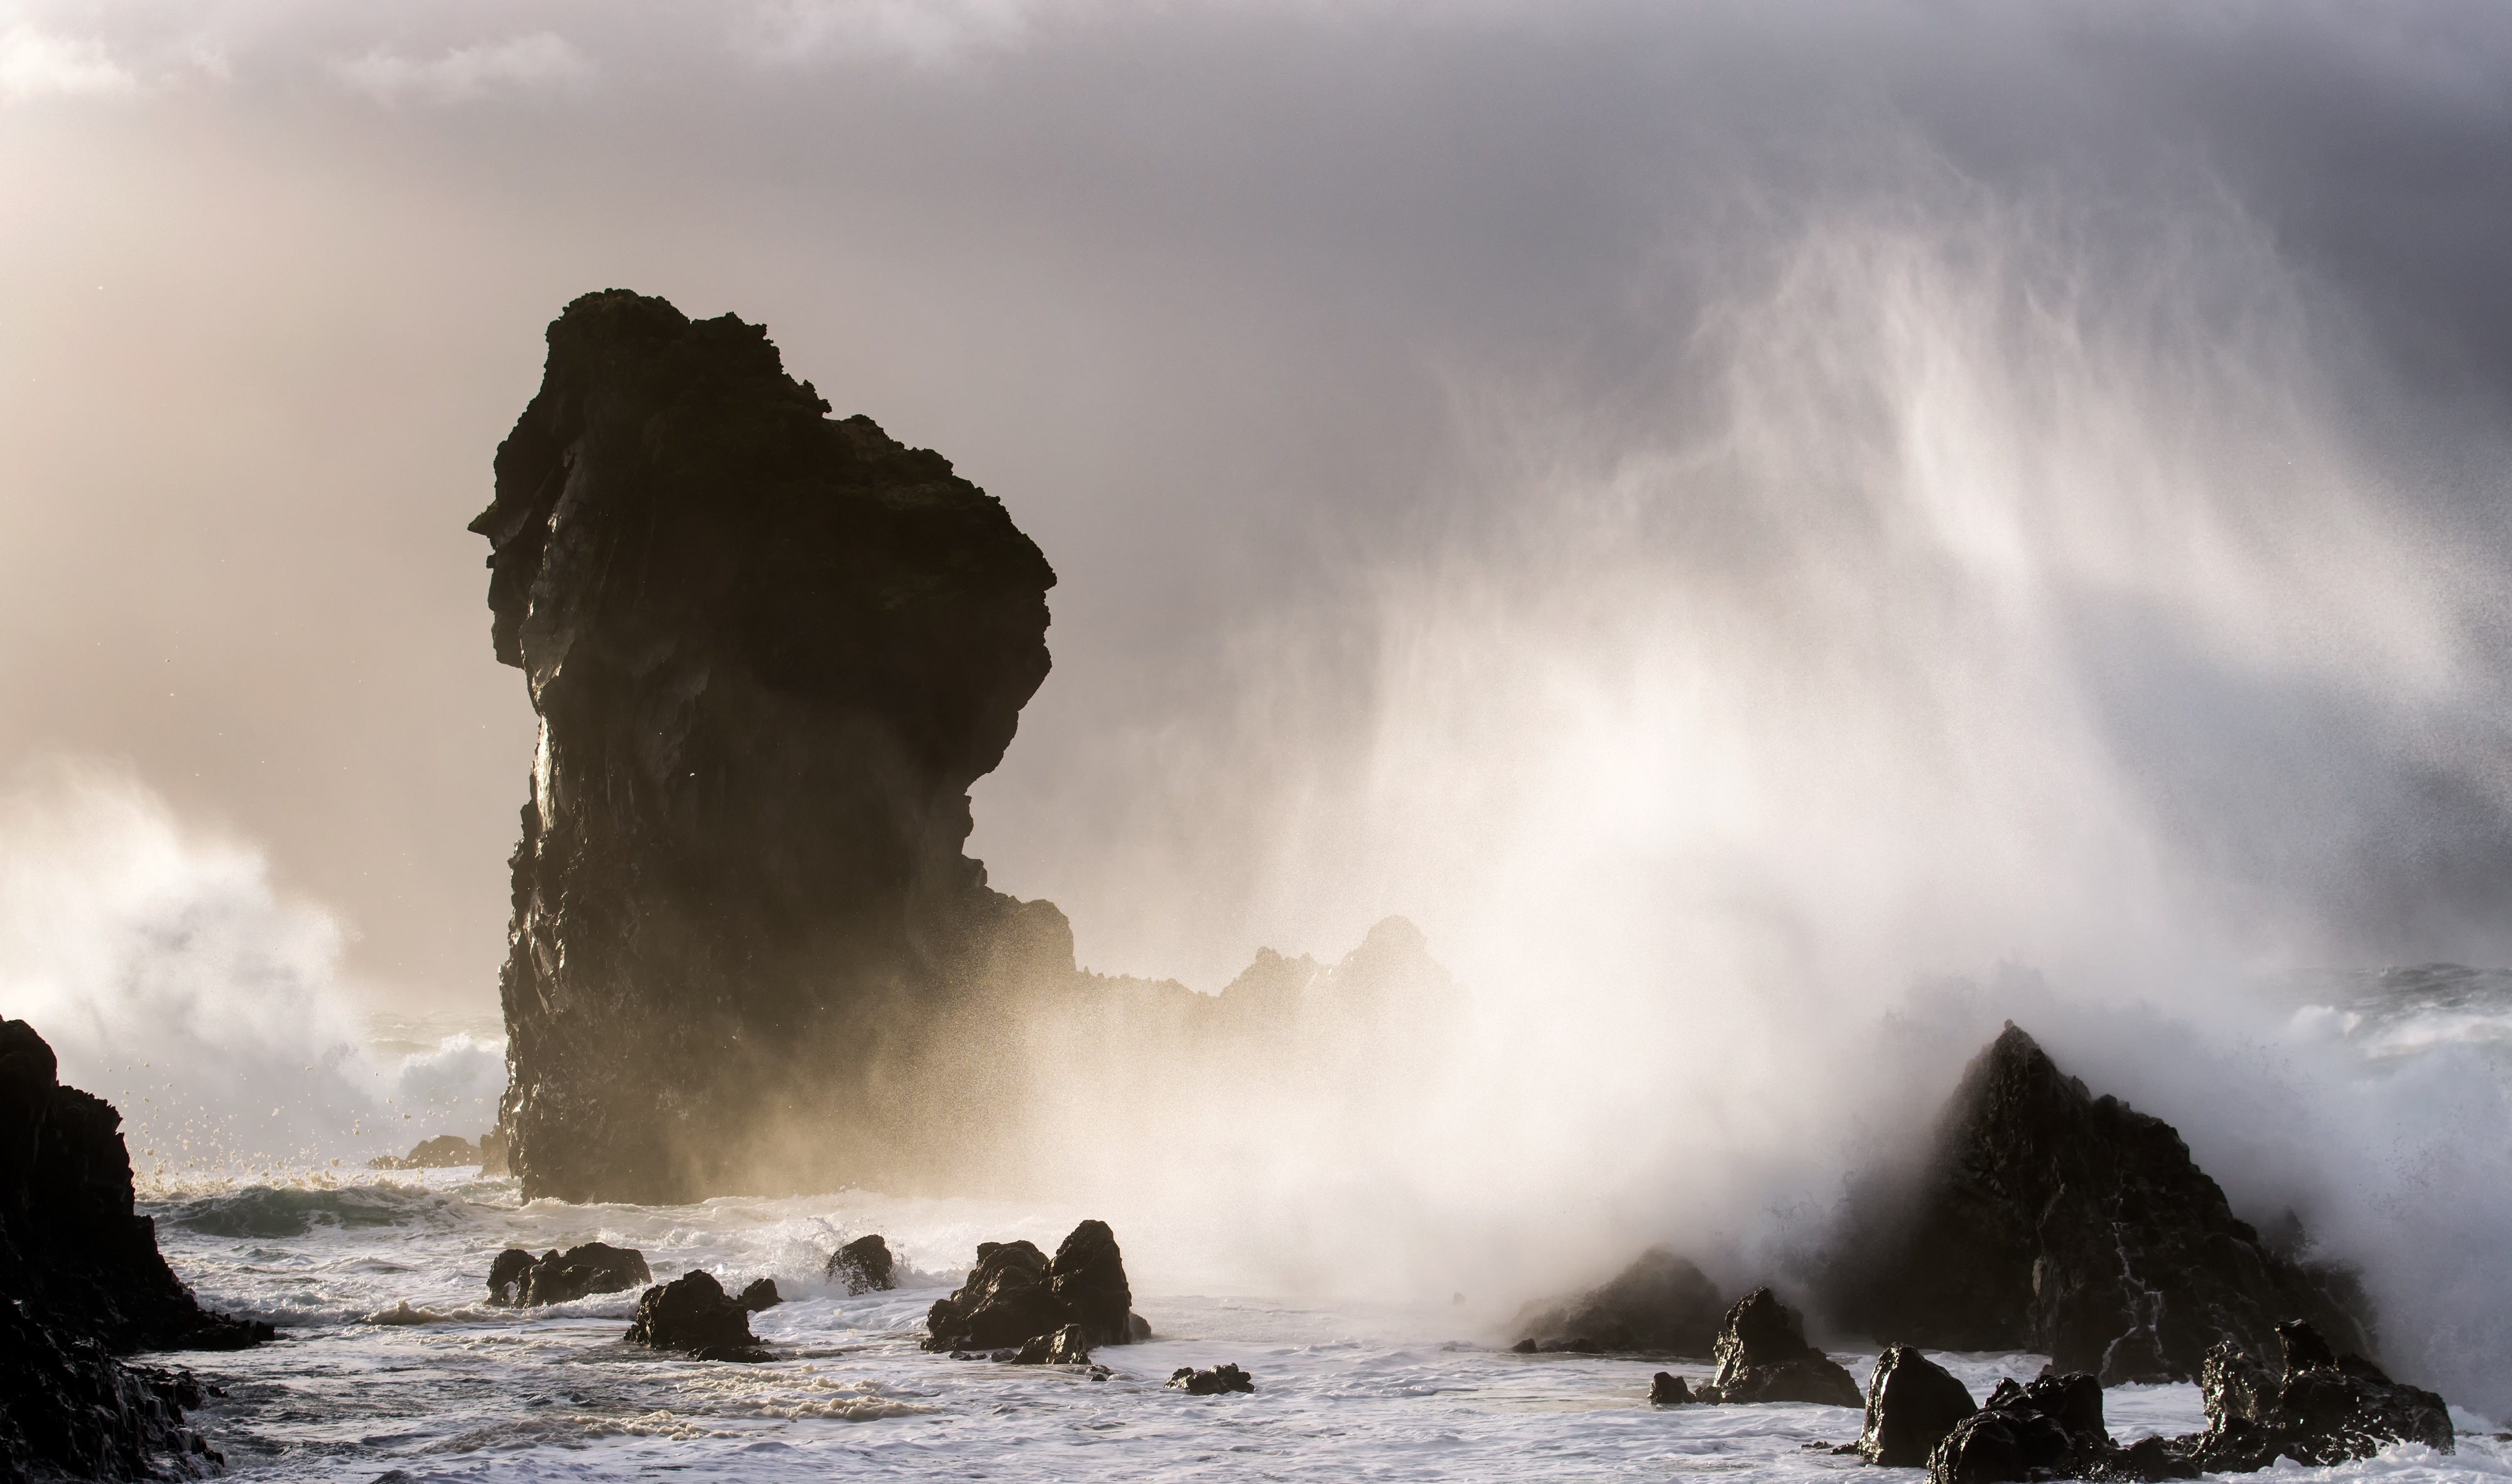 Crashing waves cover a sea stack in Iceland.